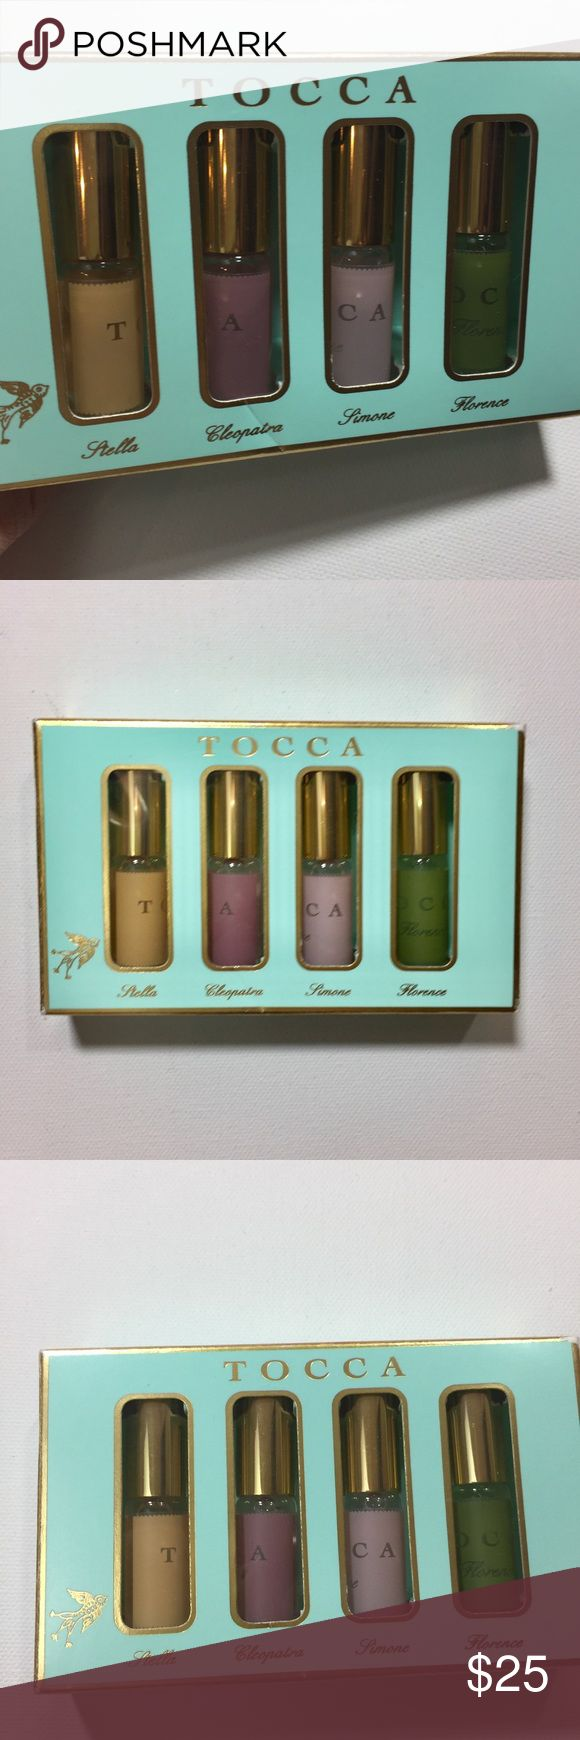 4 Tocca travel size rollerball Travel size  Never been opened  1 Stella 1 Cleopatra 1 Simone 1 Florence Tocca Makeup